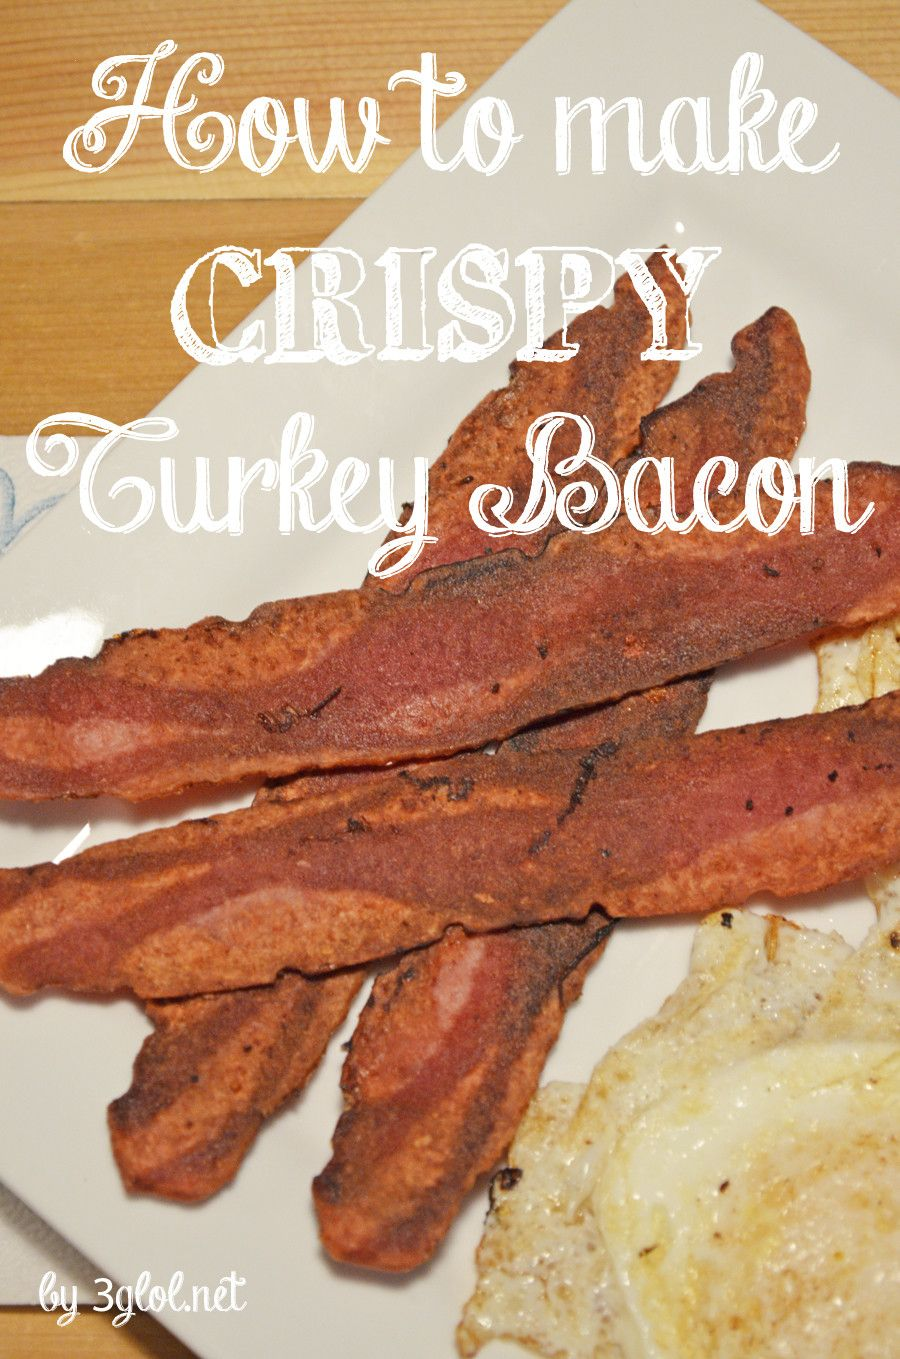 How to make crispy turkey bacon eating healthy but like crispy how to make crispy turkey bacon eating healthy but like crispy bacon heres a ccuart Images